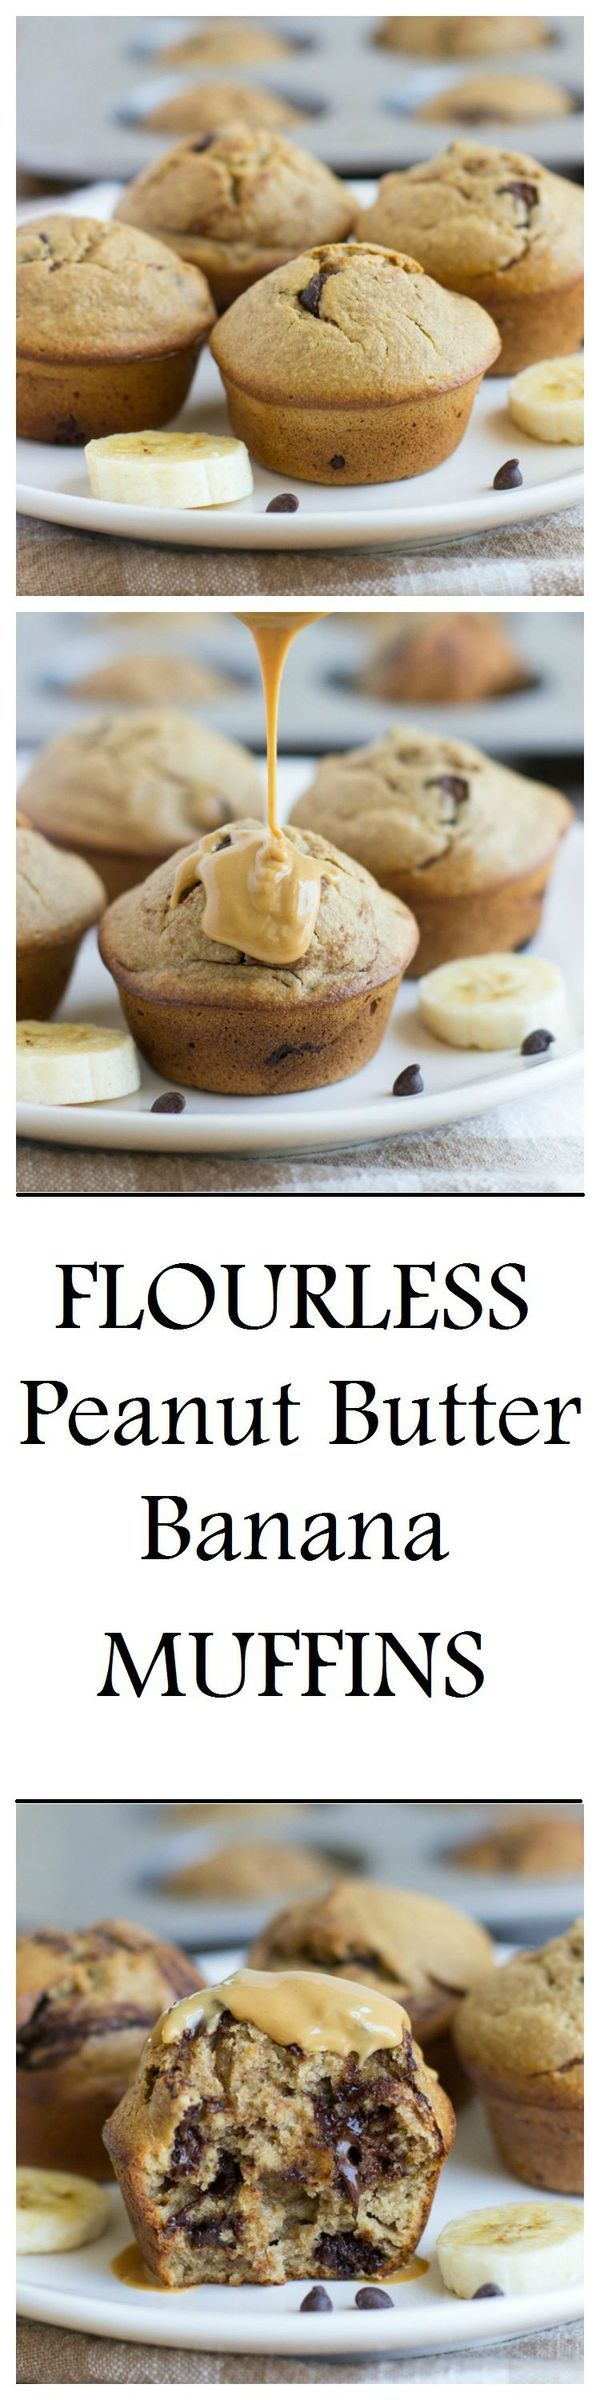 Flourless peanut butter banana muffins that are dairy-free, gluten-free, and refined sugar-free. One muffin has as much protein as an egg + they're so moist and delicious, you would never guess that they're healthy!